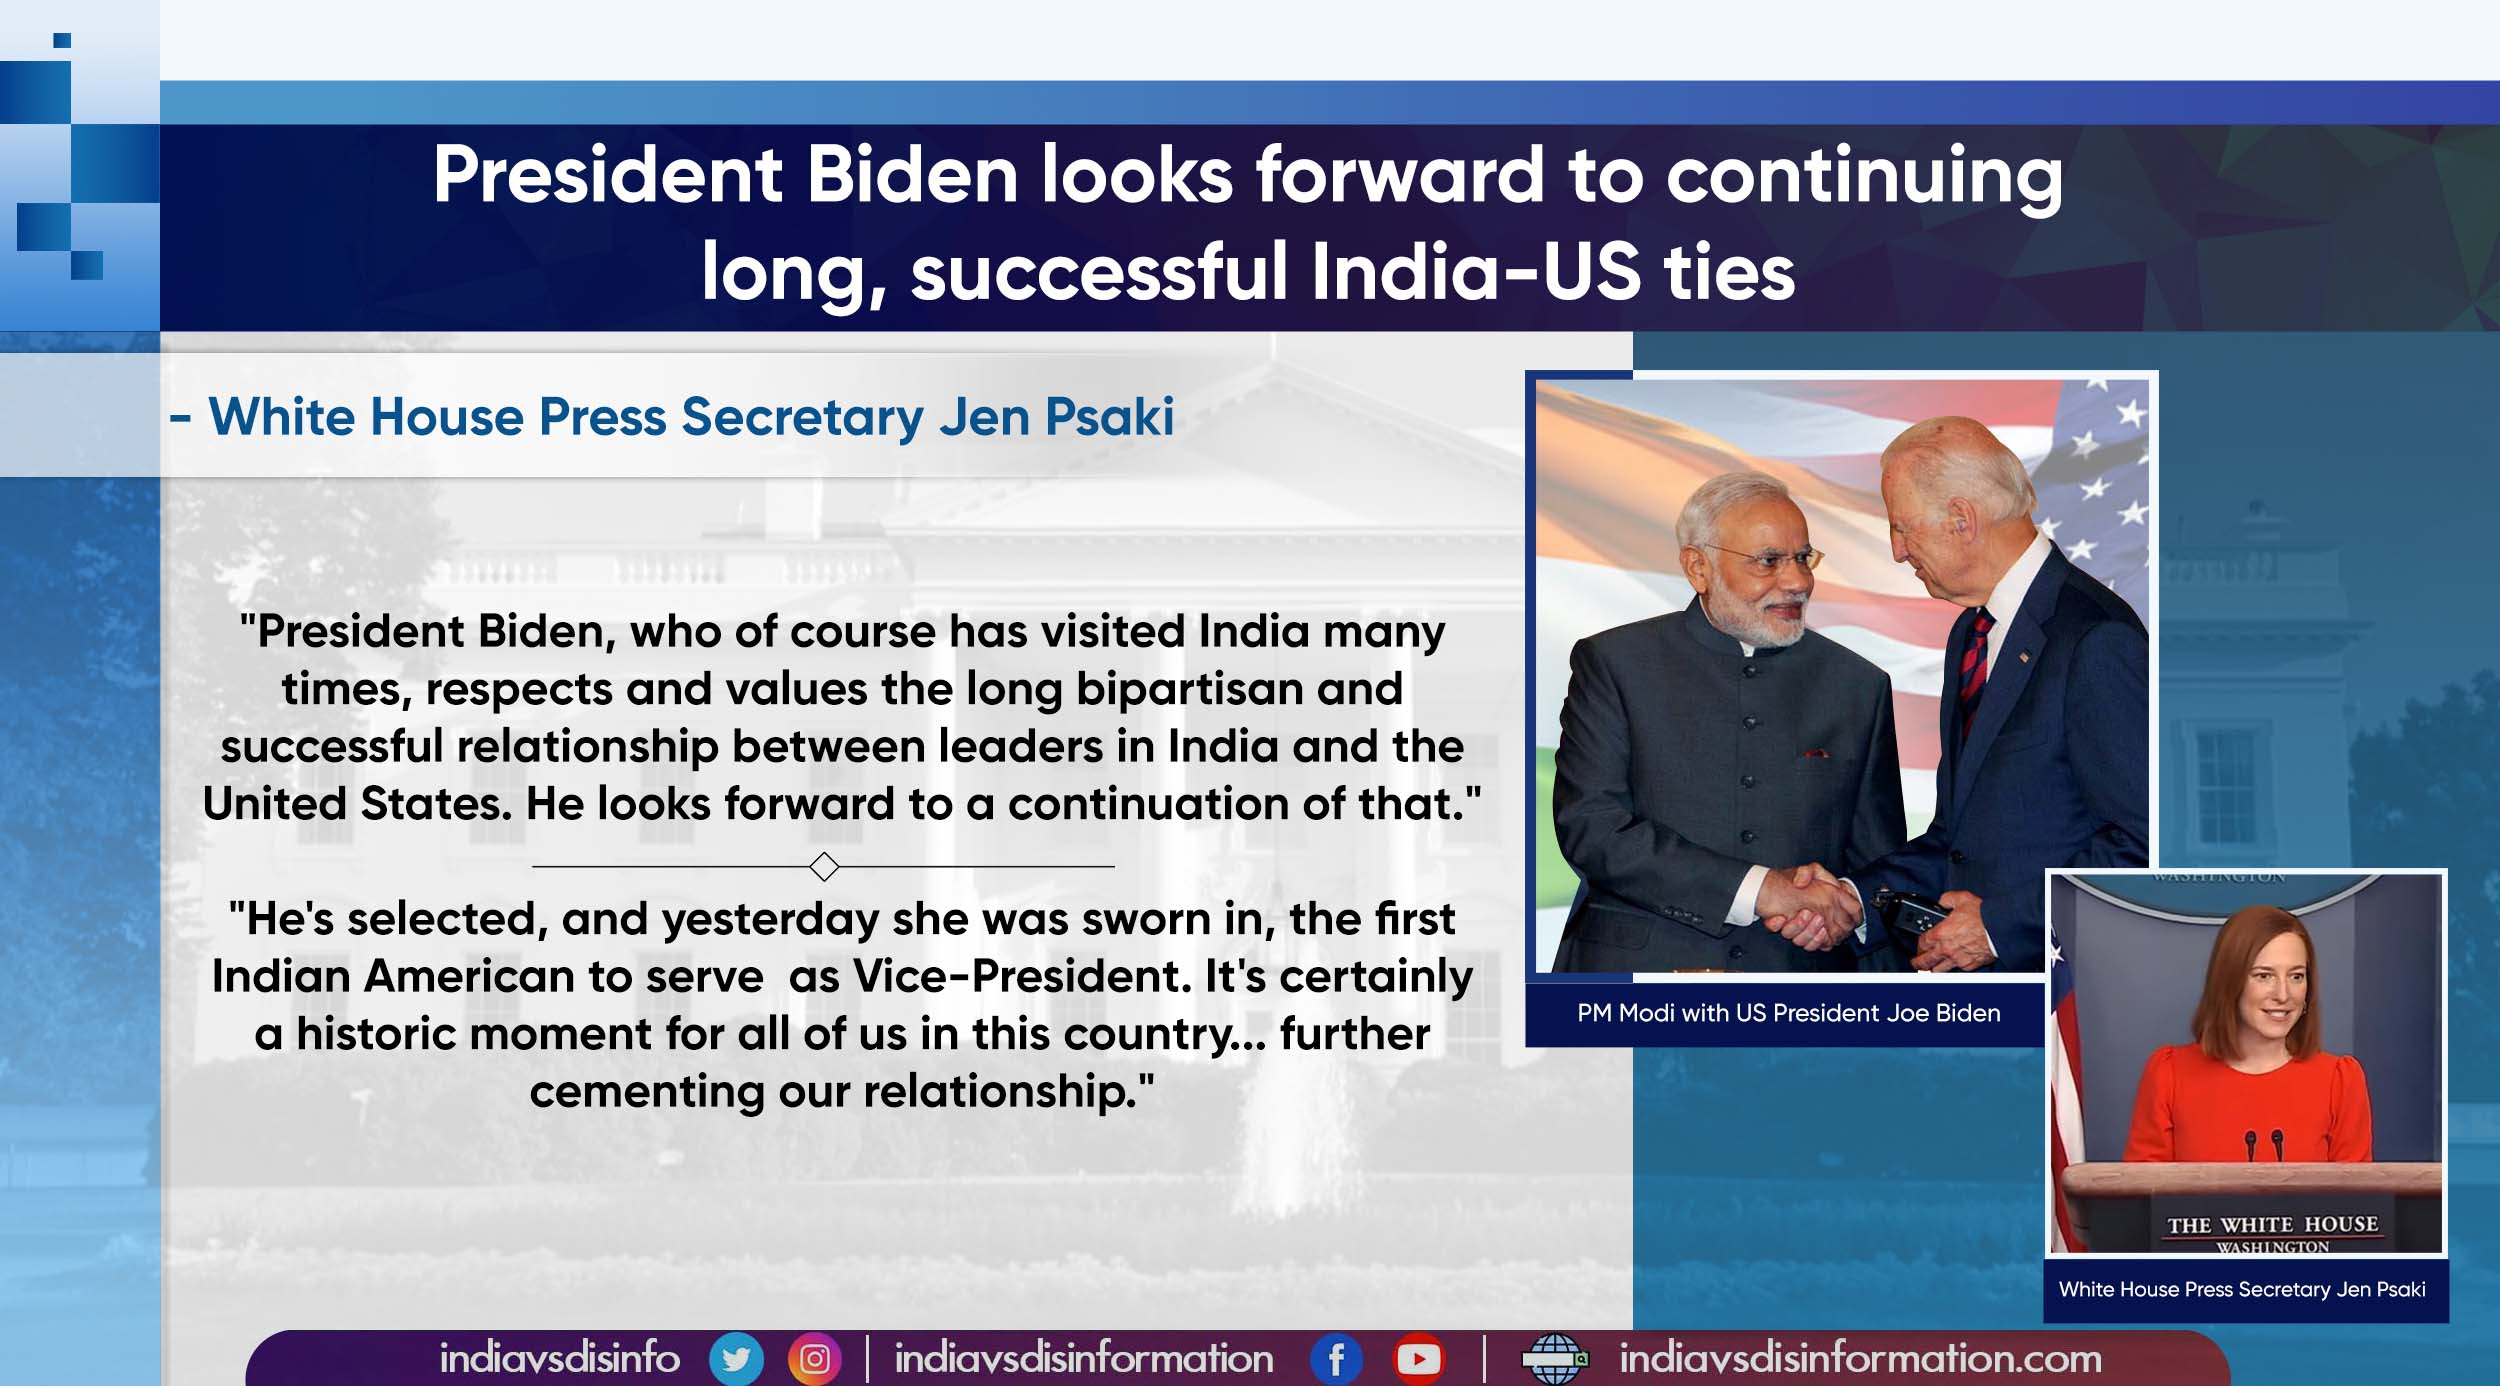 President Biden supports successful ties between US, Indian leaders: White House